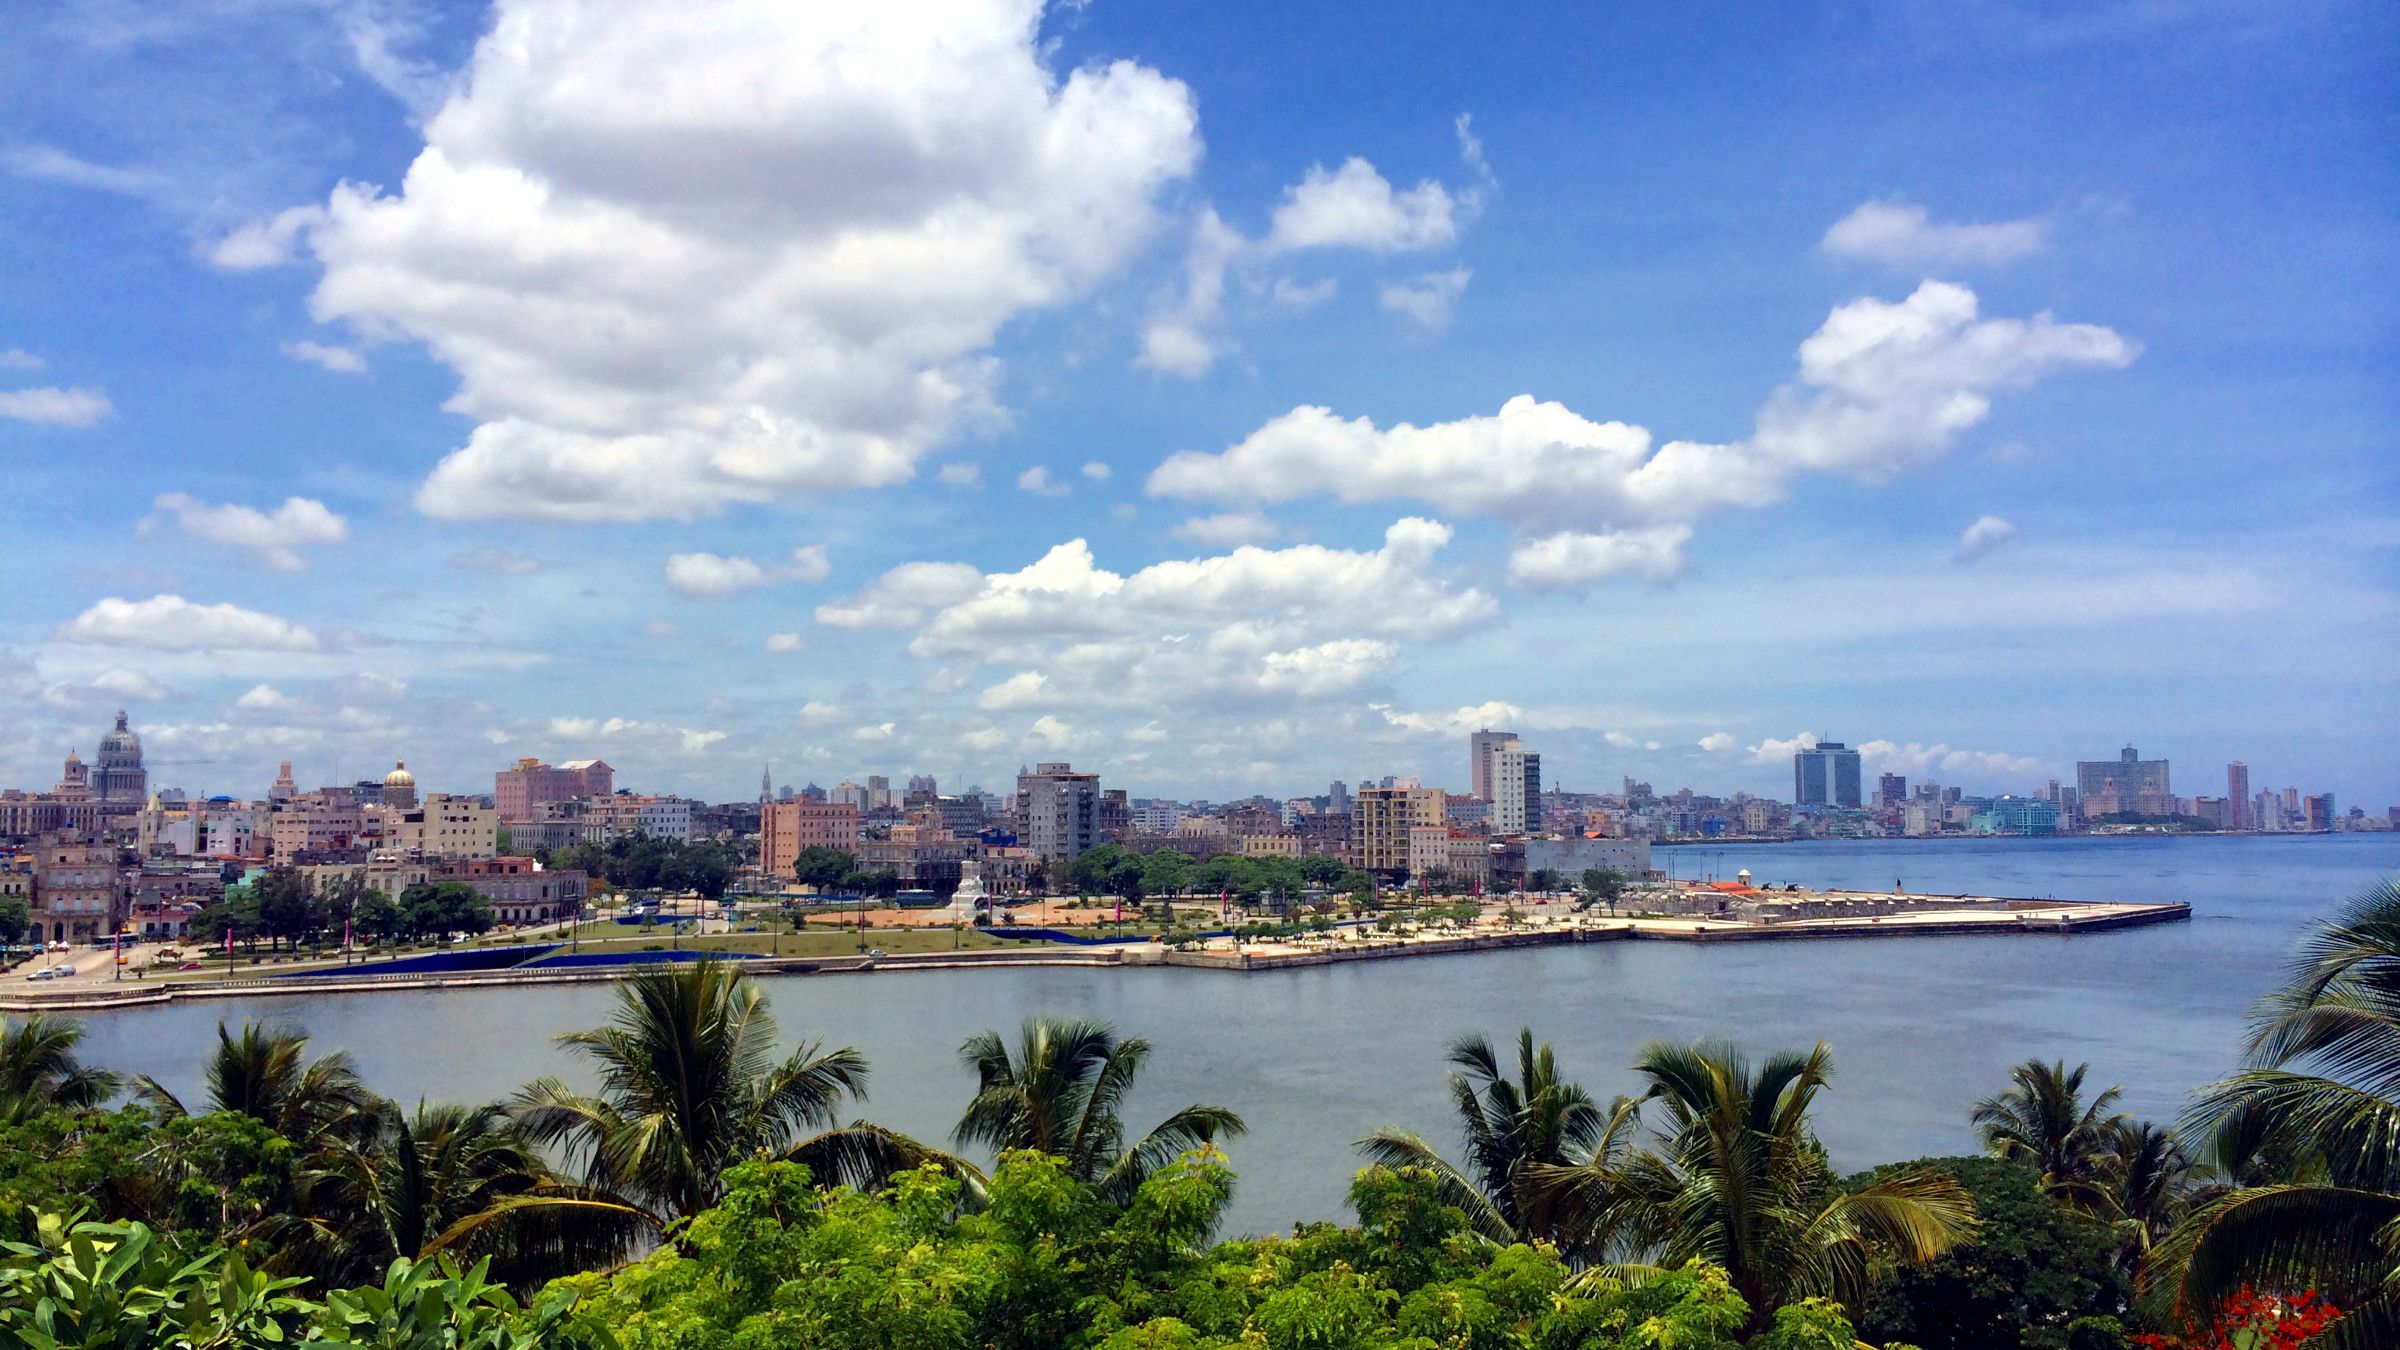 The skyline of Habana, Cuba.